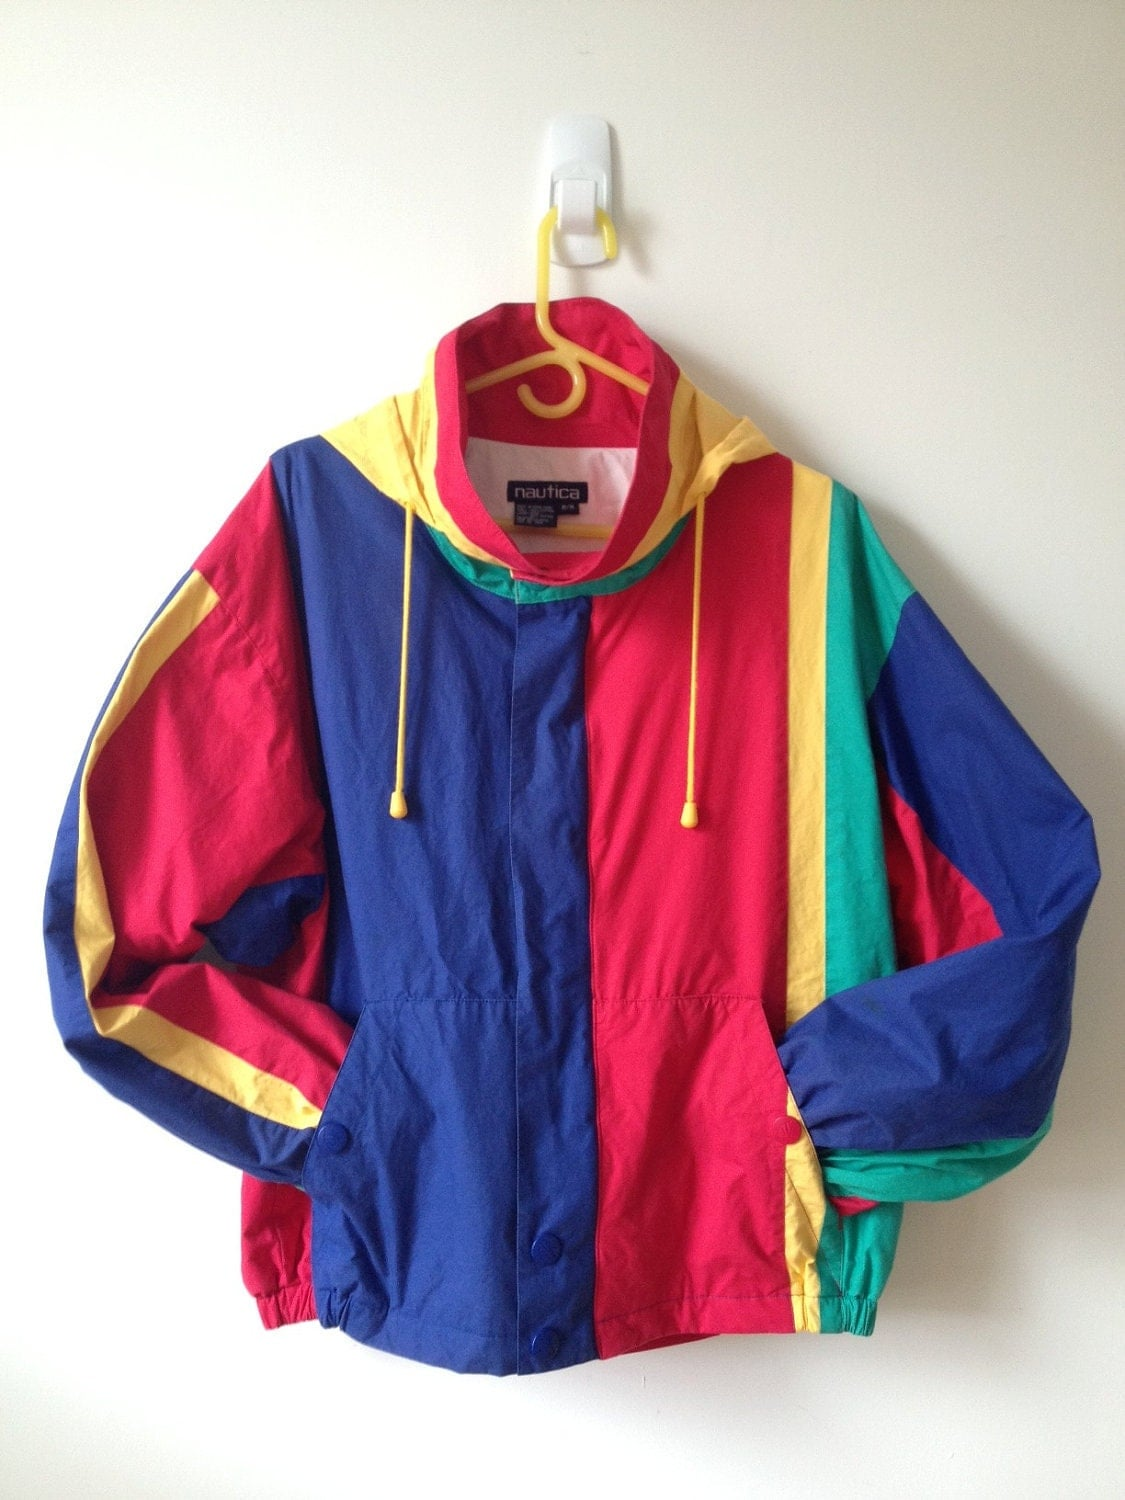 80s Vintage Clothing In The Uk Just Got Easier: Vintage 80s 90s Nautica Color Block Jacket With Hood M L Xl